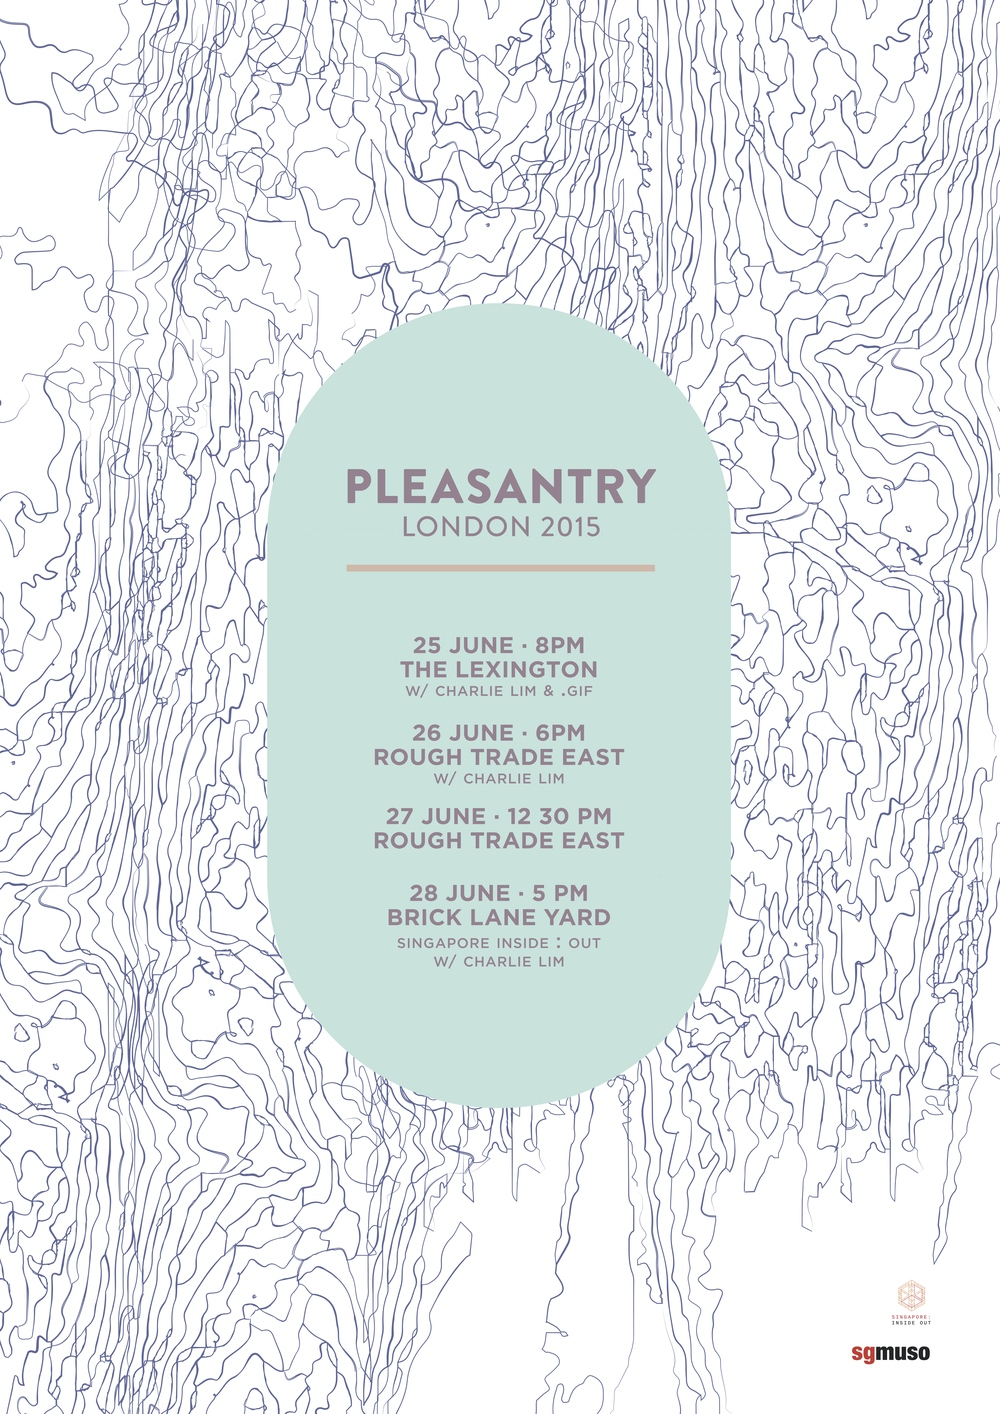 pleasantrylondon2015